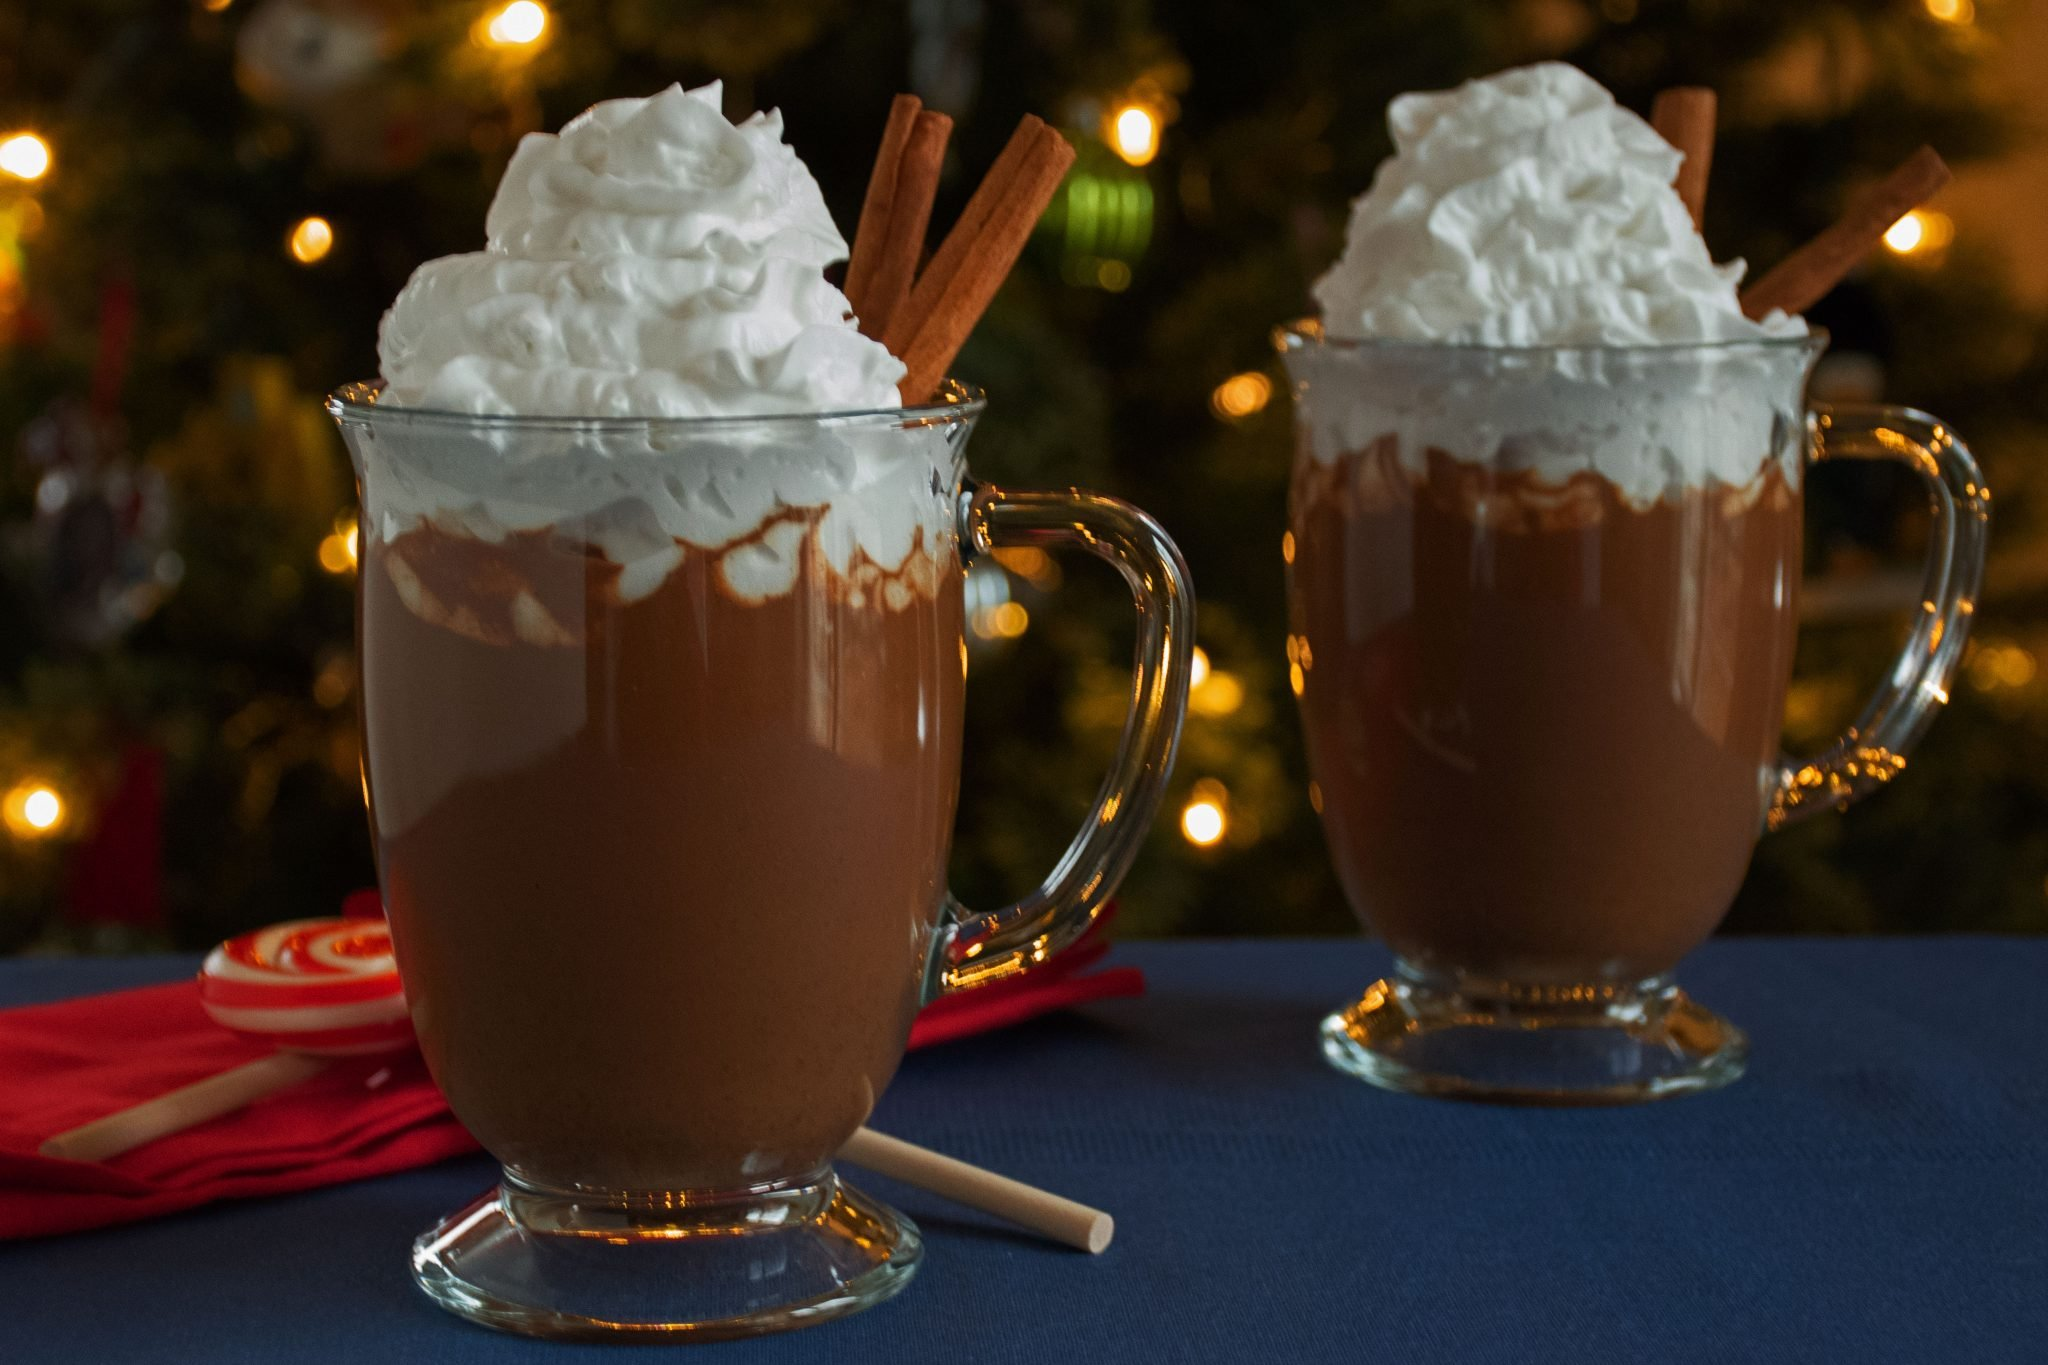 2 glass mugs of Gingerbread Hot Cocoa with whipped topping